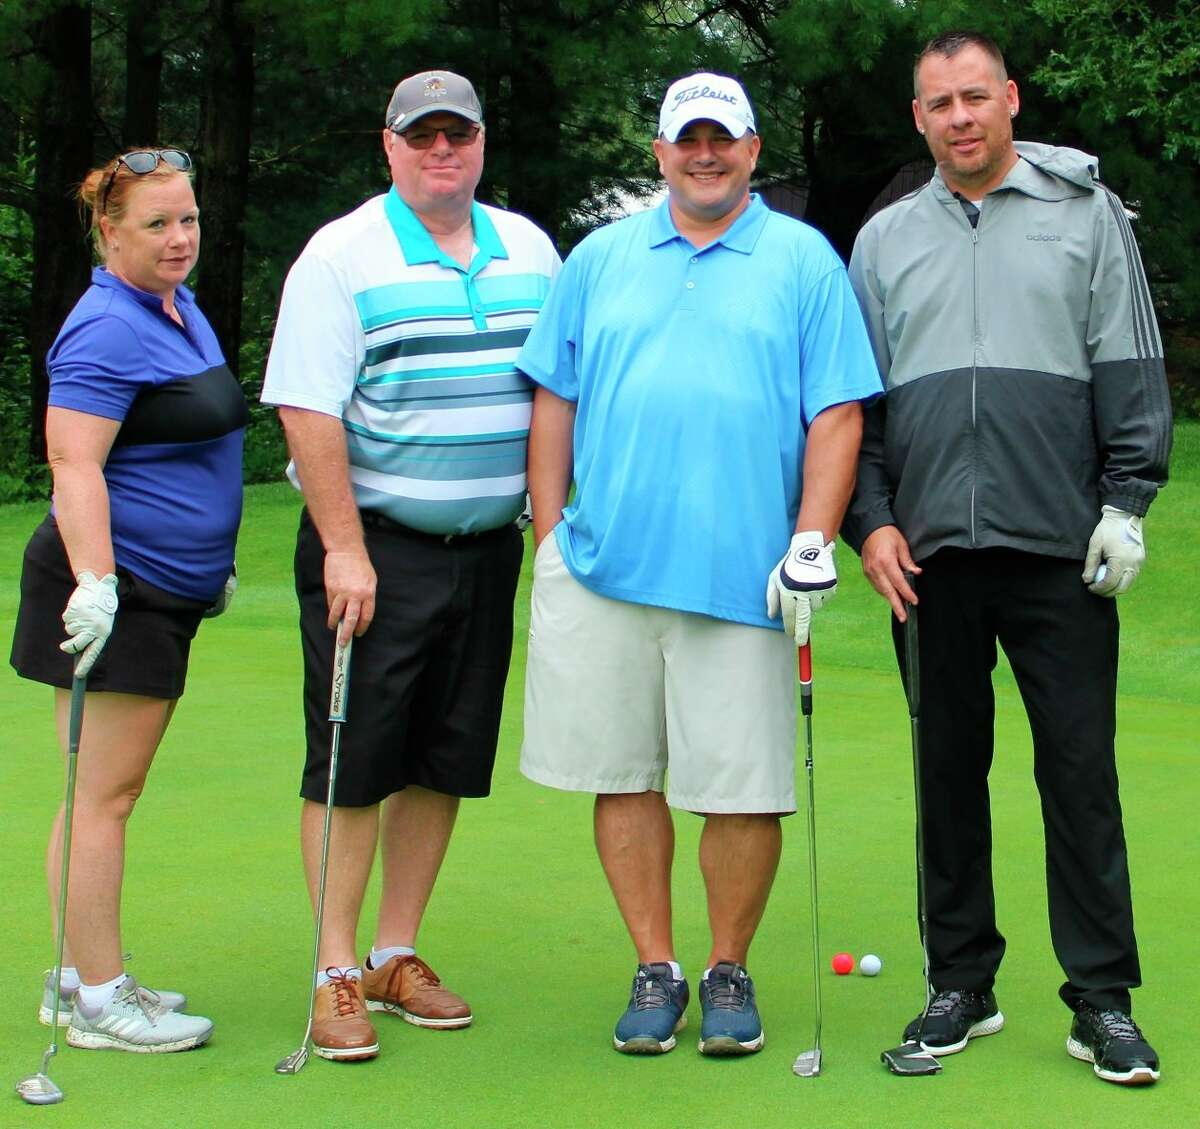 Second-Place Team (left to right):Little River Casino team Rochelle Sam, Brian Rayburn, Chad Eckhardt, and Jonnie Sam. (Courtesy Photo)